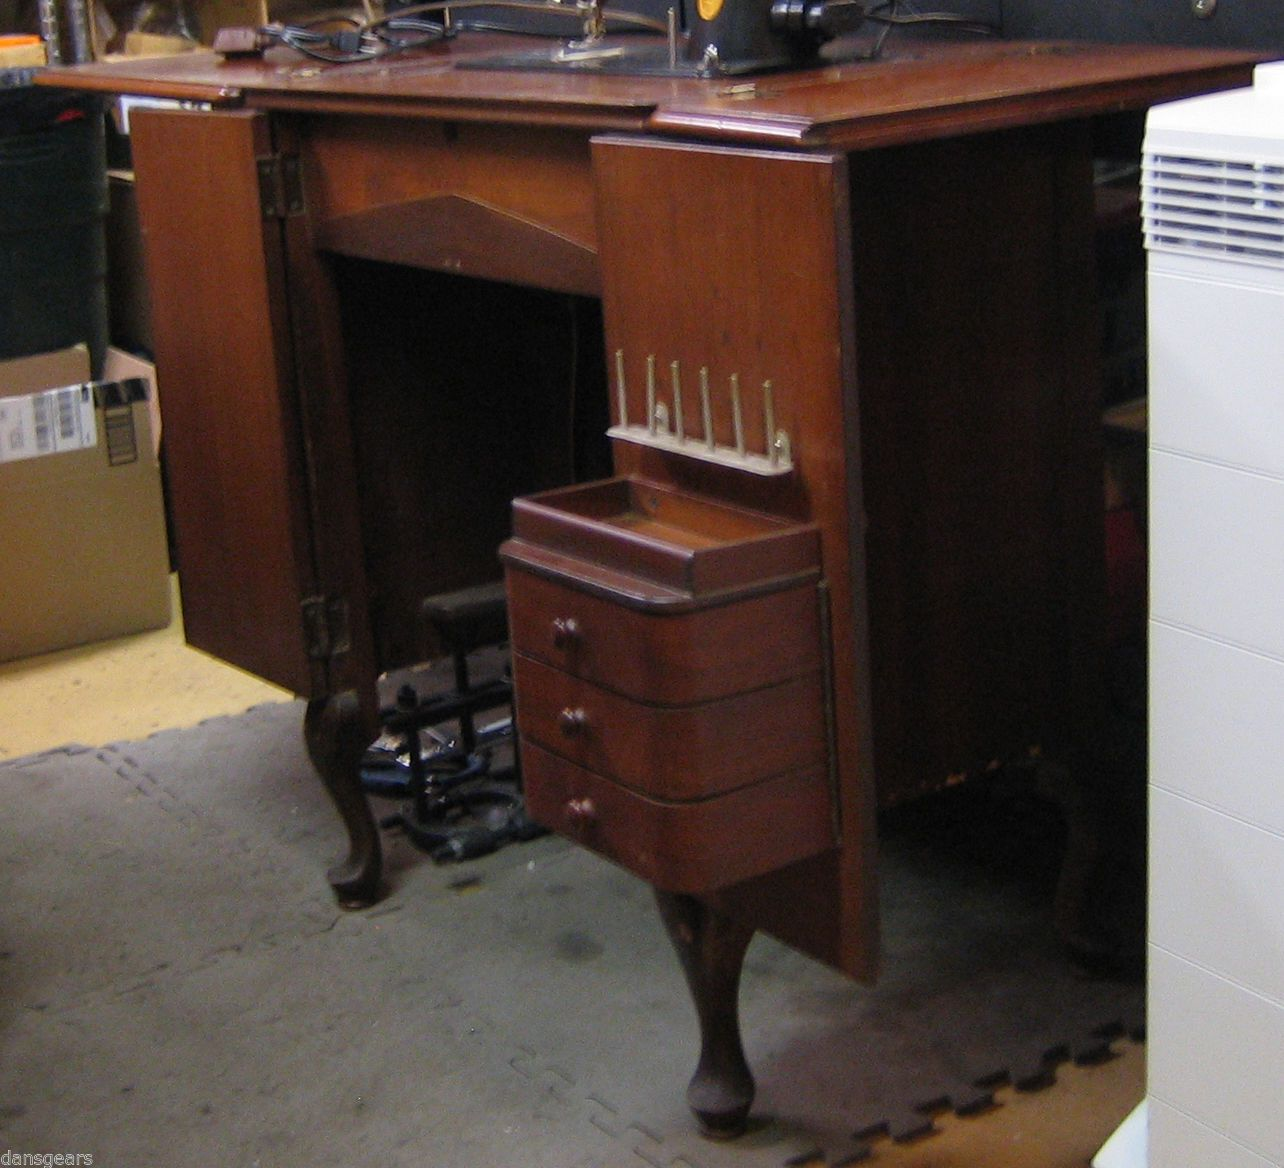 Singer Kitchens: Details About Rare Singer Cabinet No. 48 For 201-2 Sewing